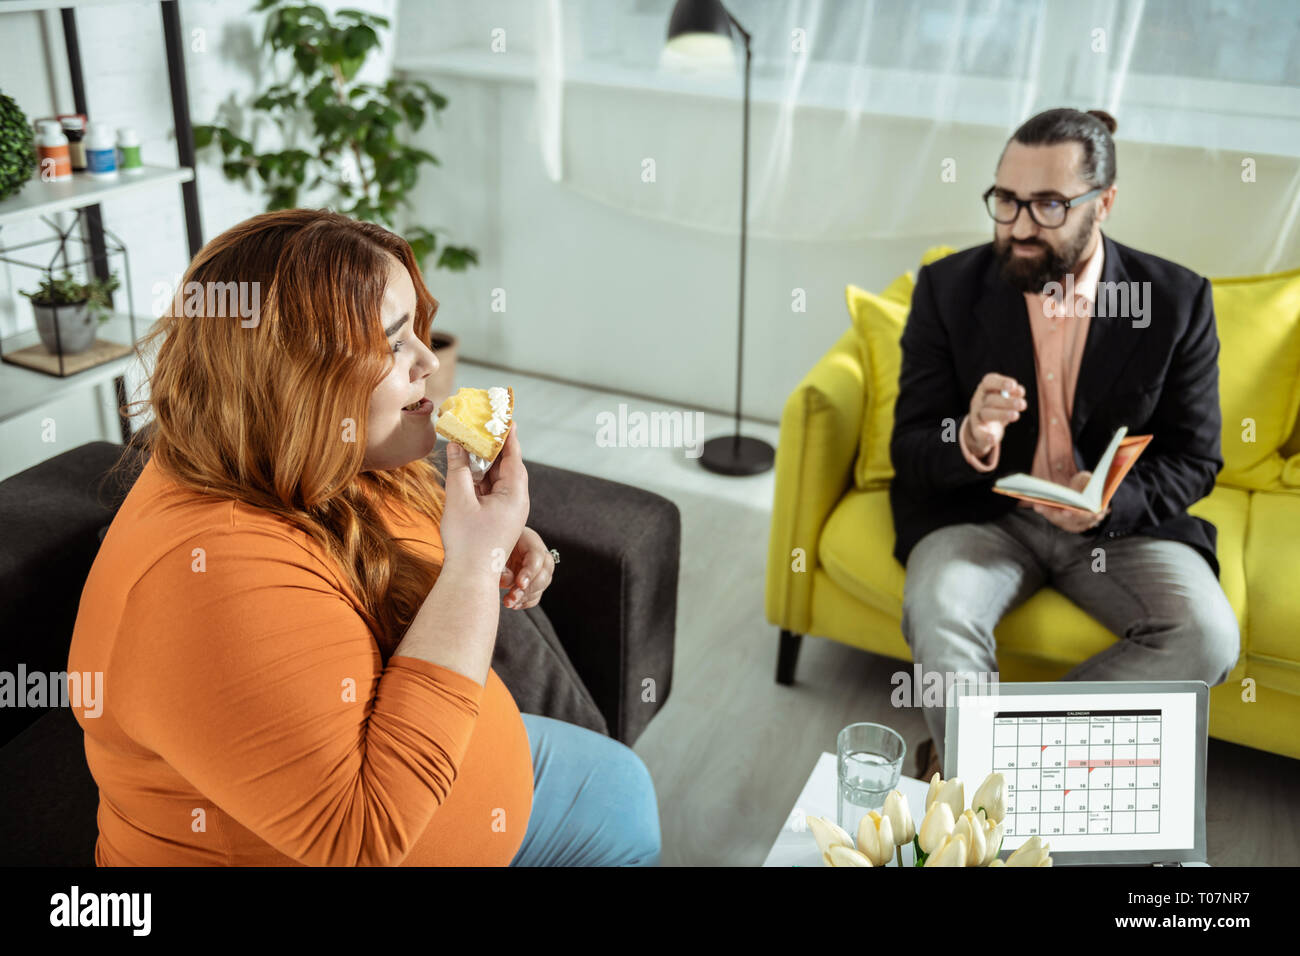 Emotional red-haired woman having serious eating disorder - Stock Image